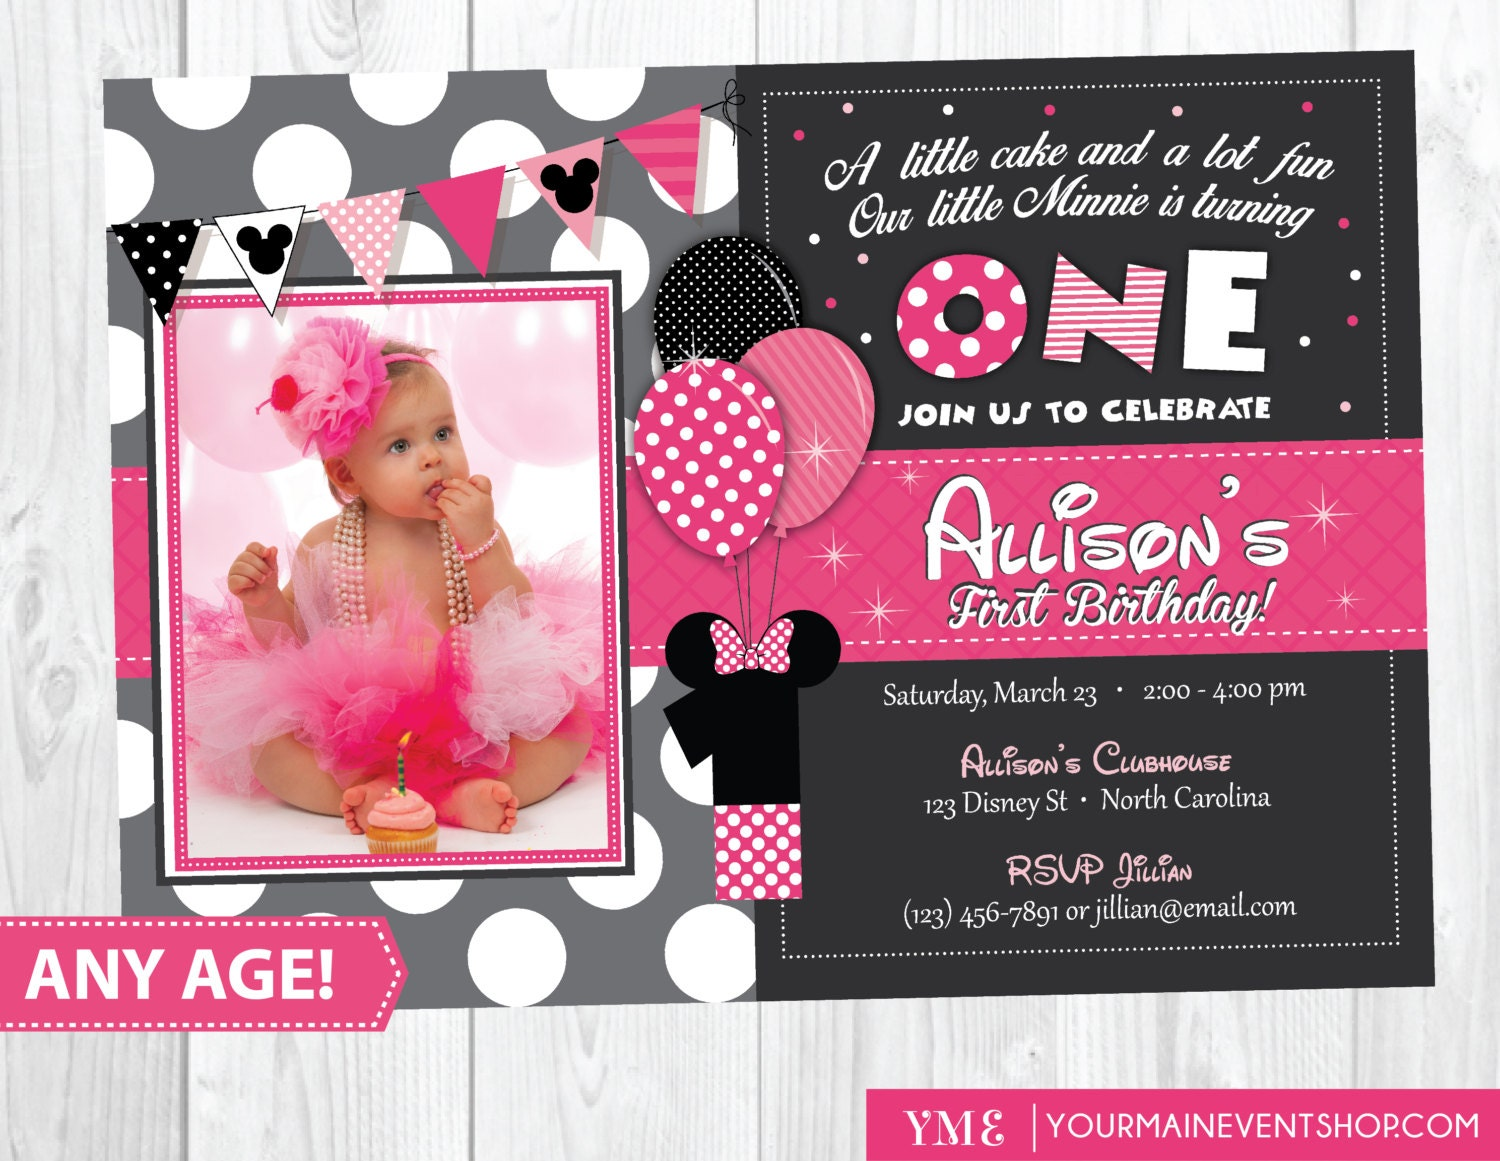 Minnie Mouse Birthday Invitation Minnie Mouse Inspired - Minnie mouse birthday invitation images